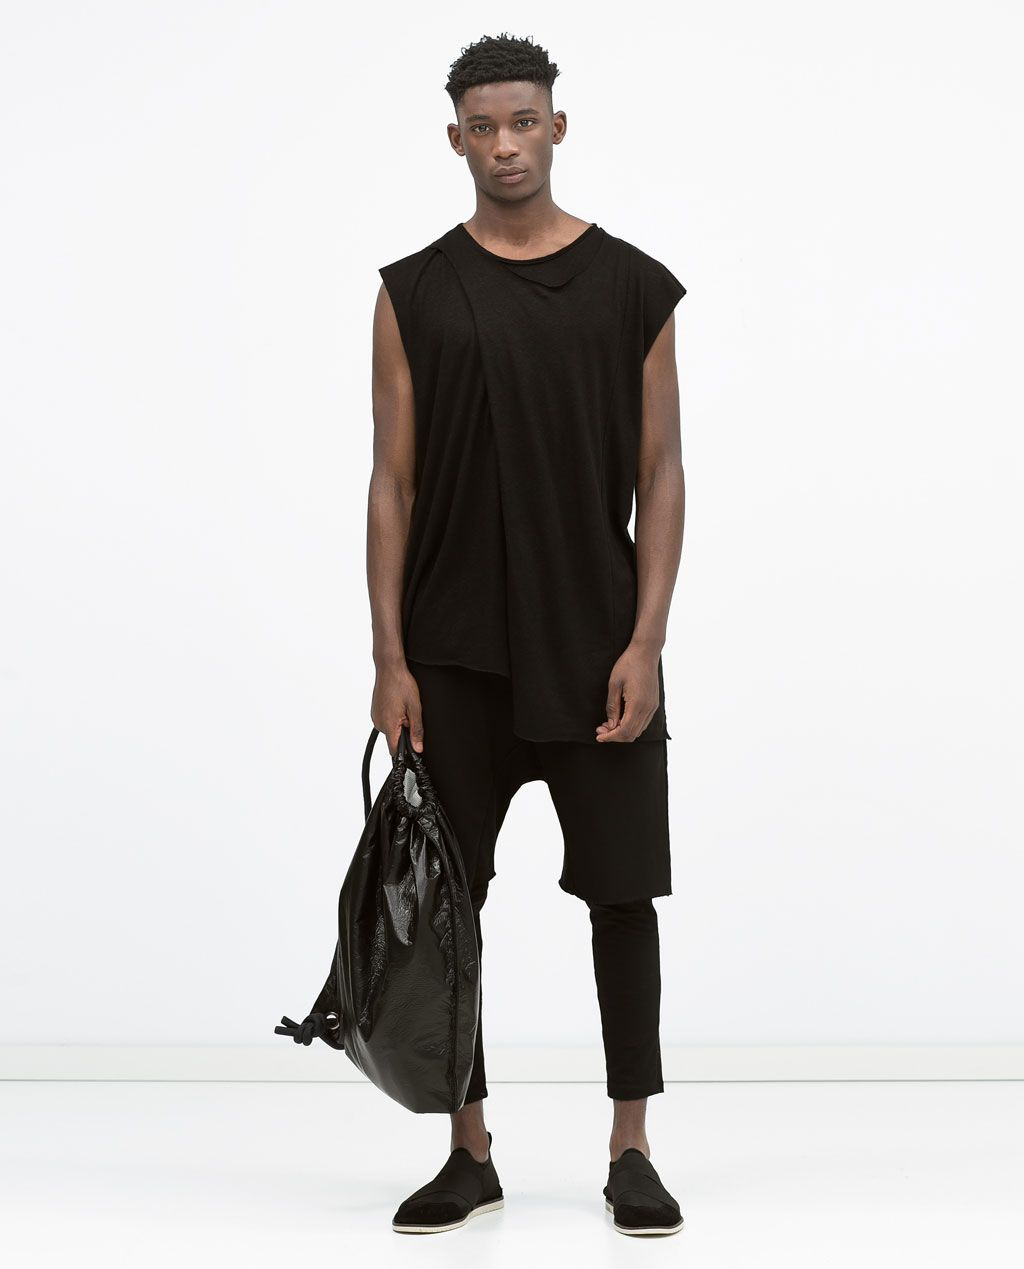 outlet store e05d4 a2d00 Image 1 of SLEEVELESS T-SHIRT from Zara   Edwardian Duo ...